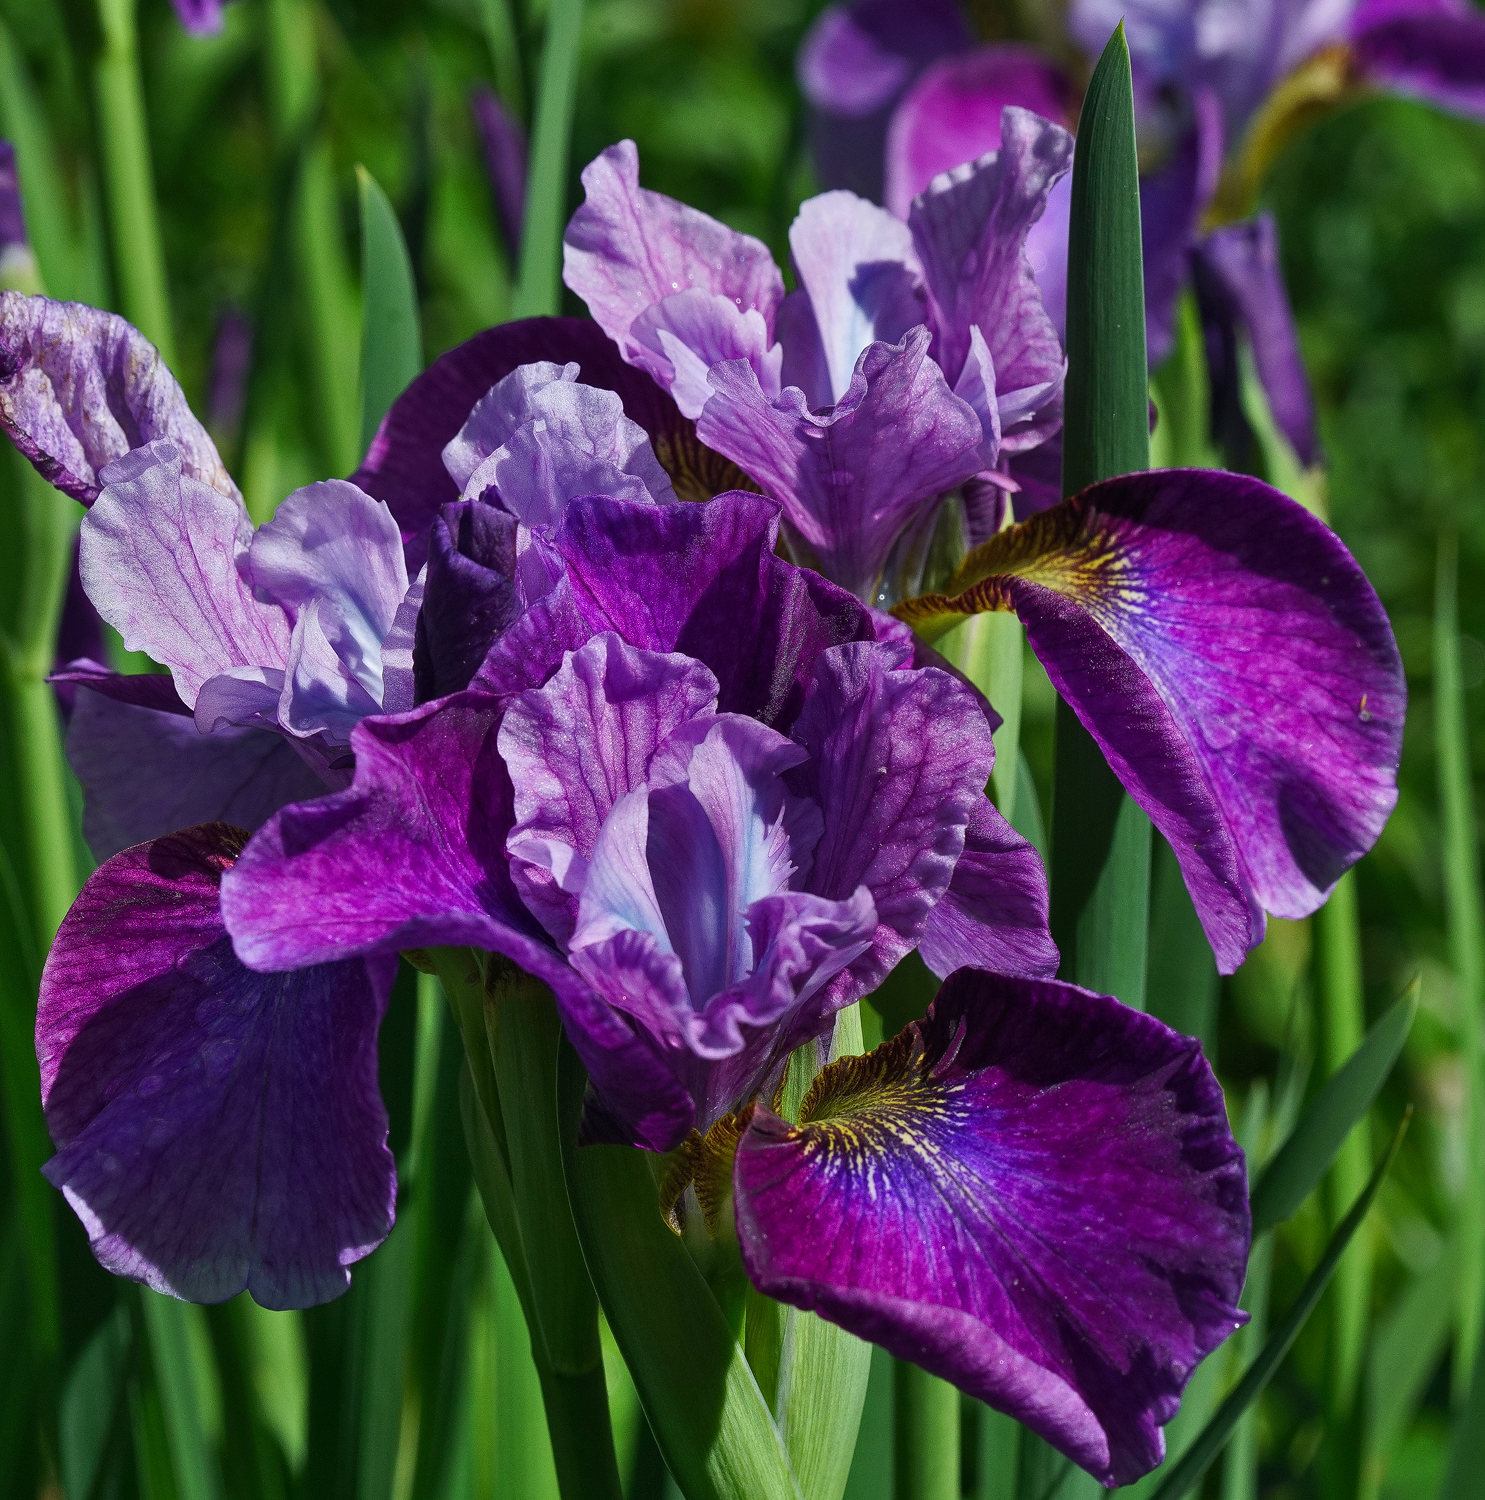 iris delight author sava gregory and verena than